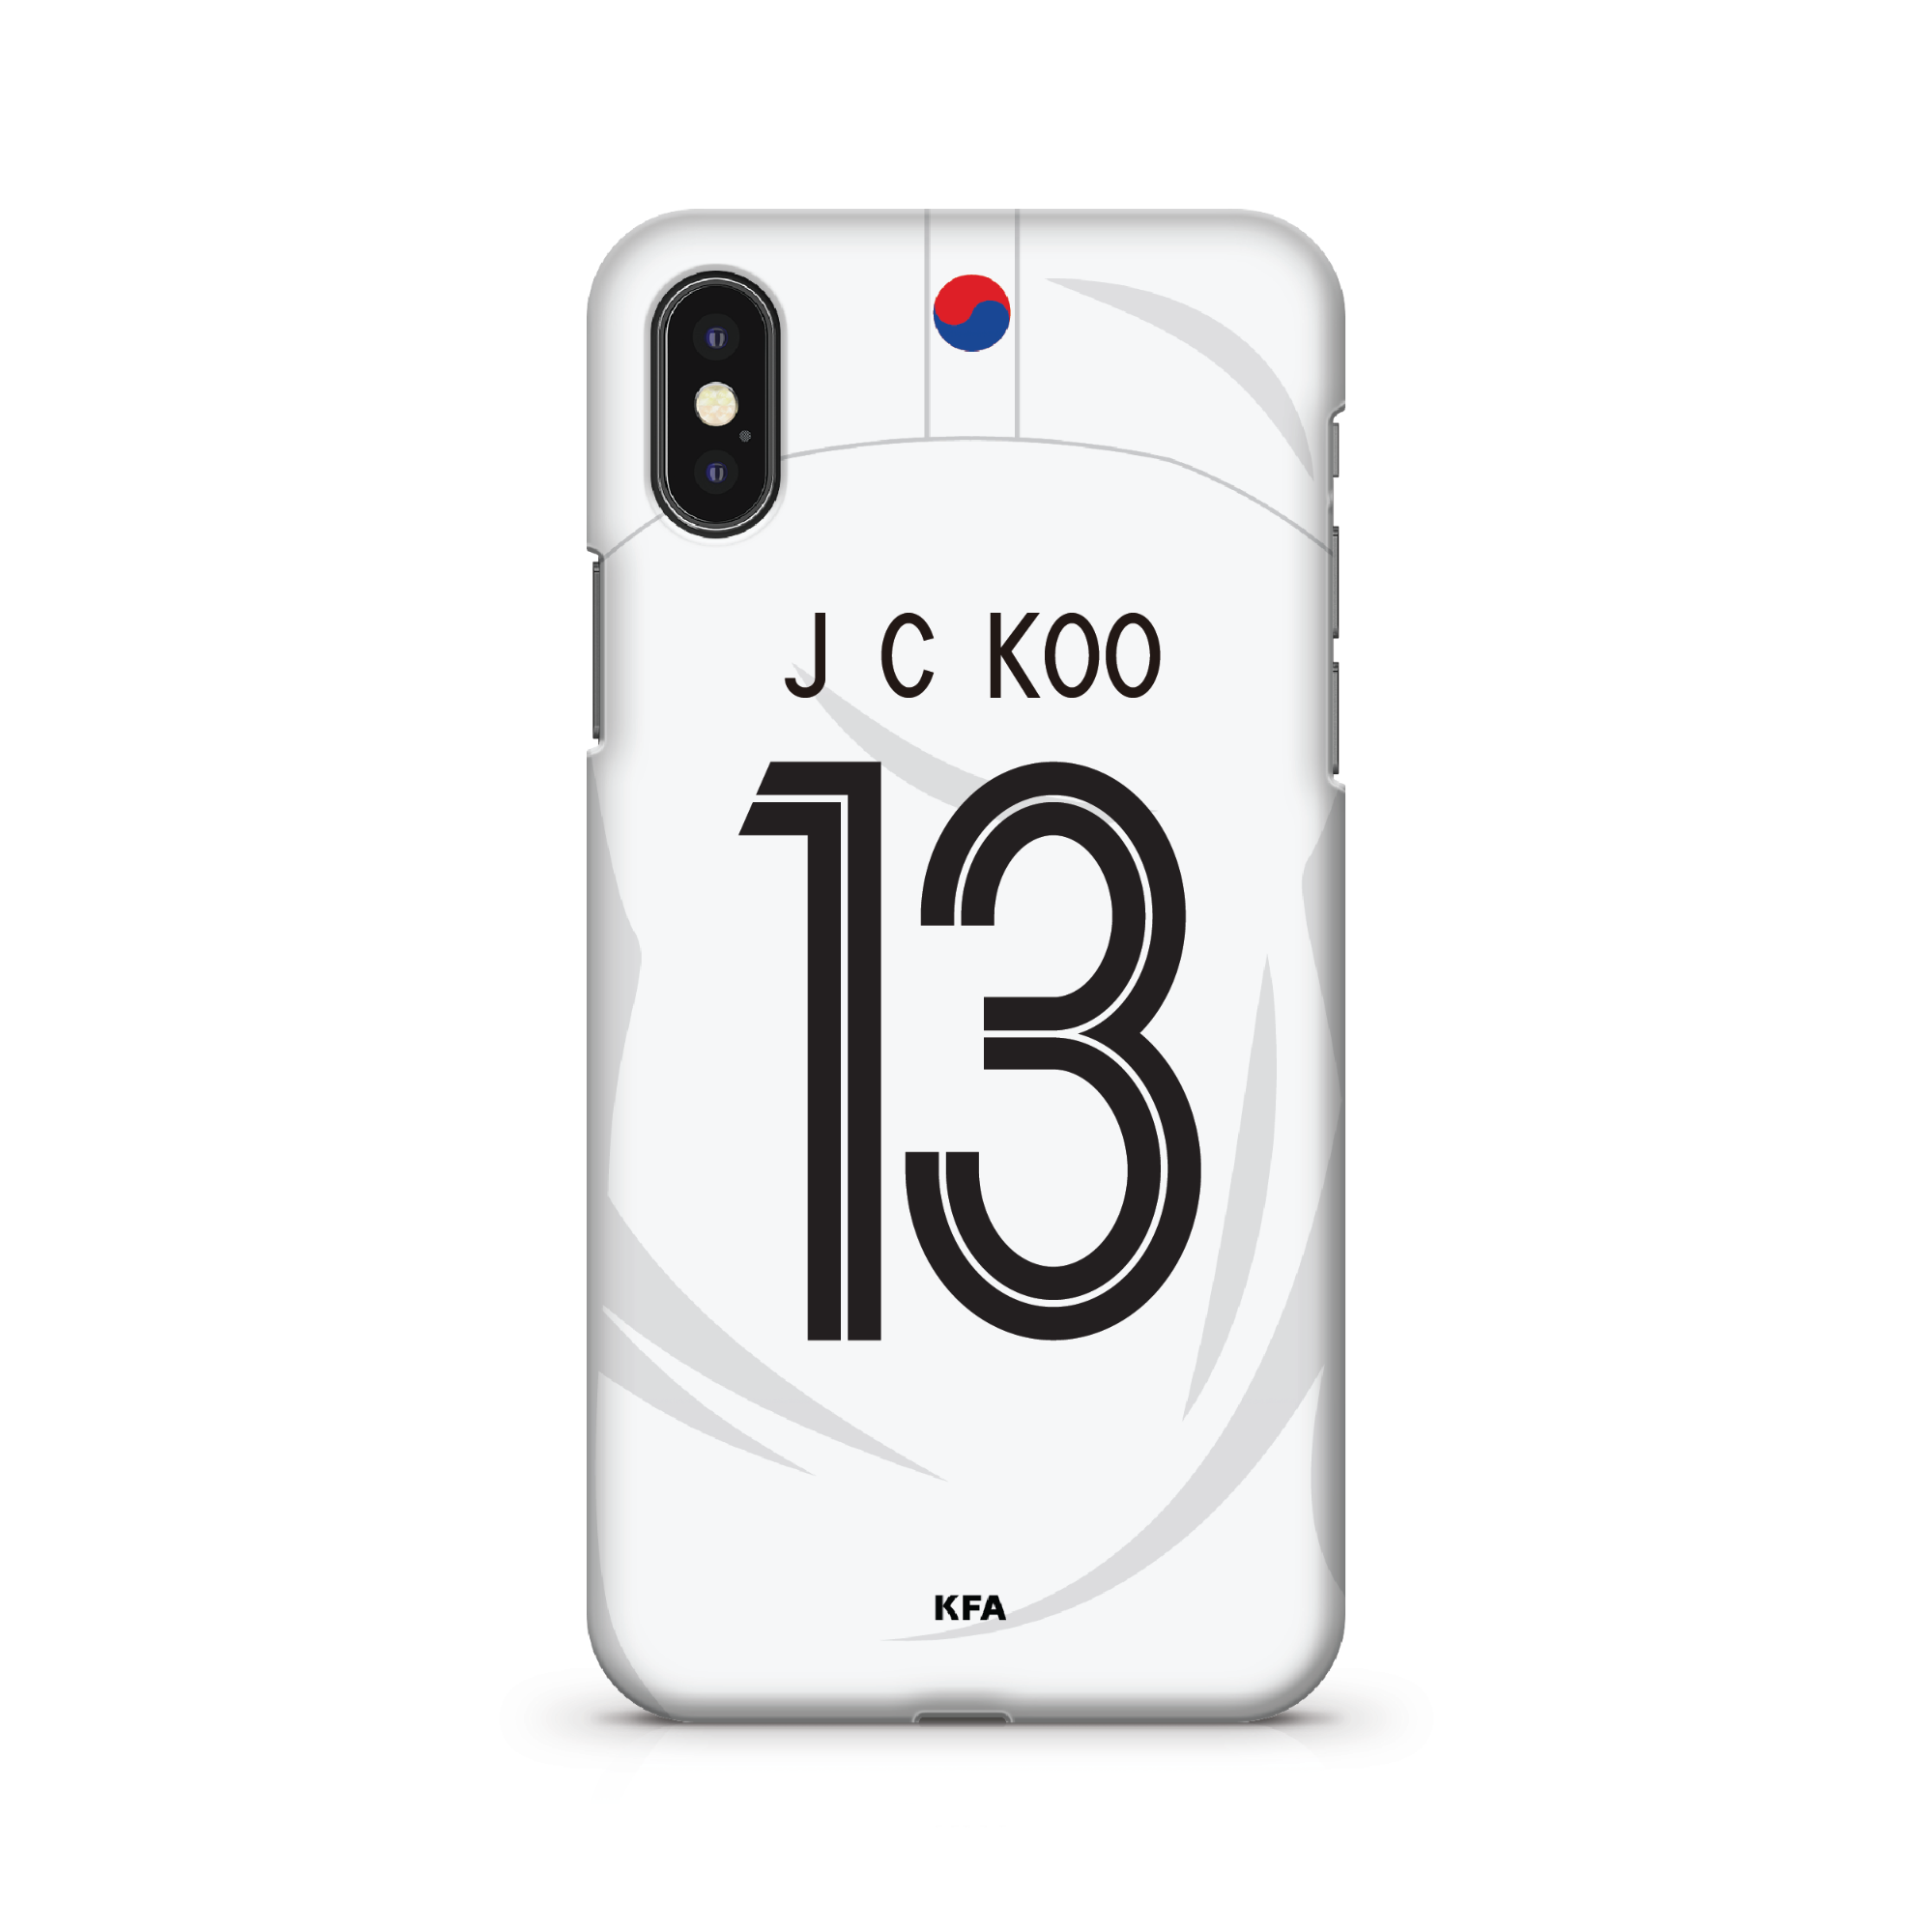 KFA OFFICIAL SMARTPHONE CASE (AWAY)